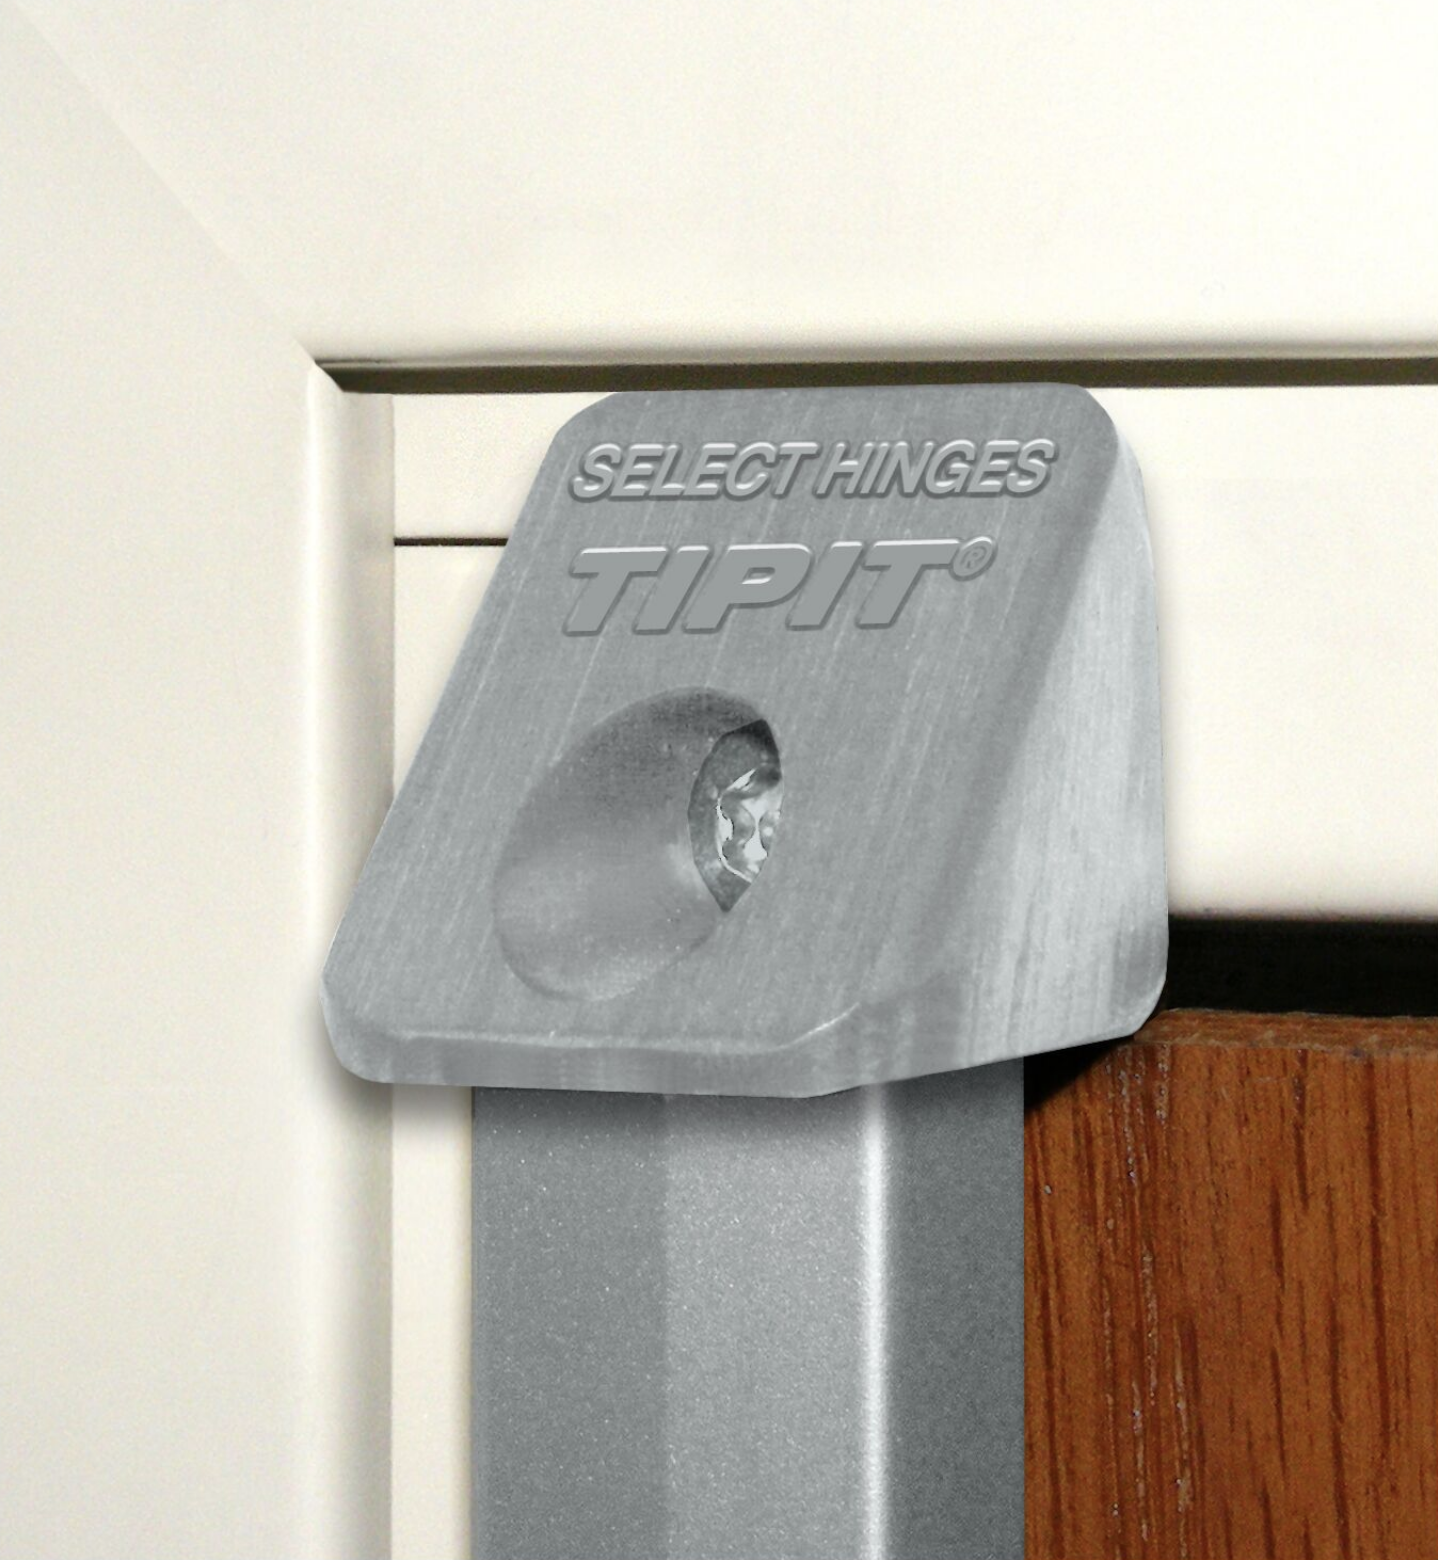 Ligature Resistant Concealed Geared Continuous Hinge - Up Close TIPIT Hinge